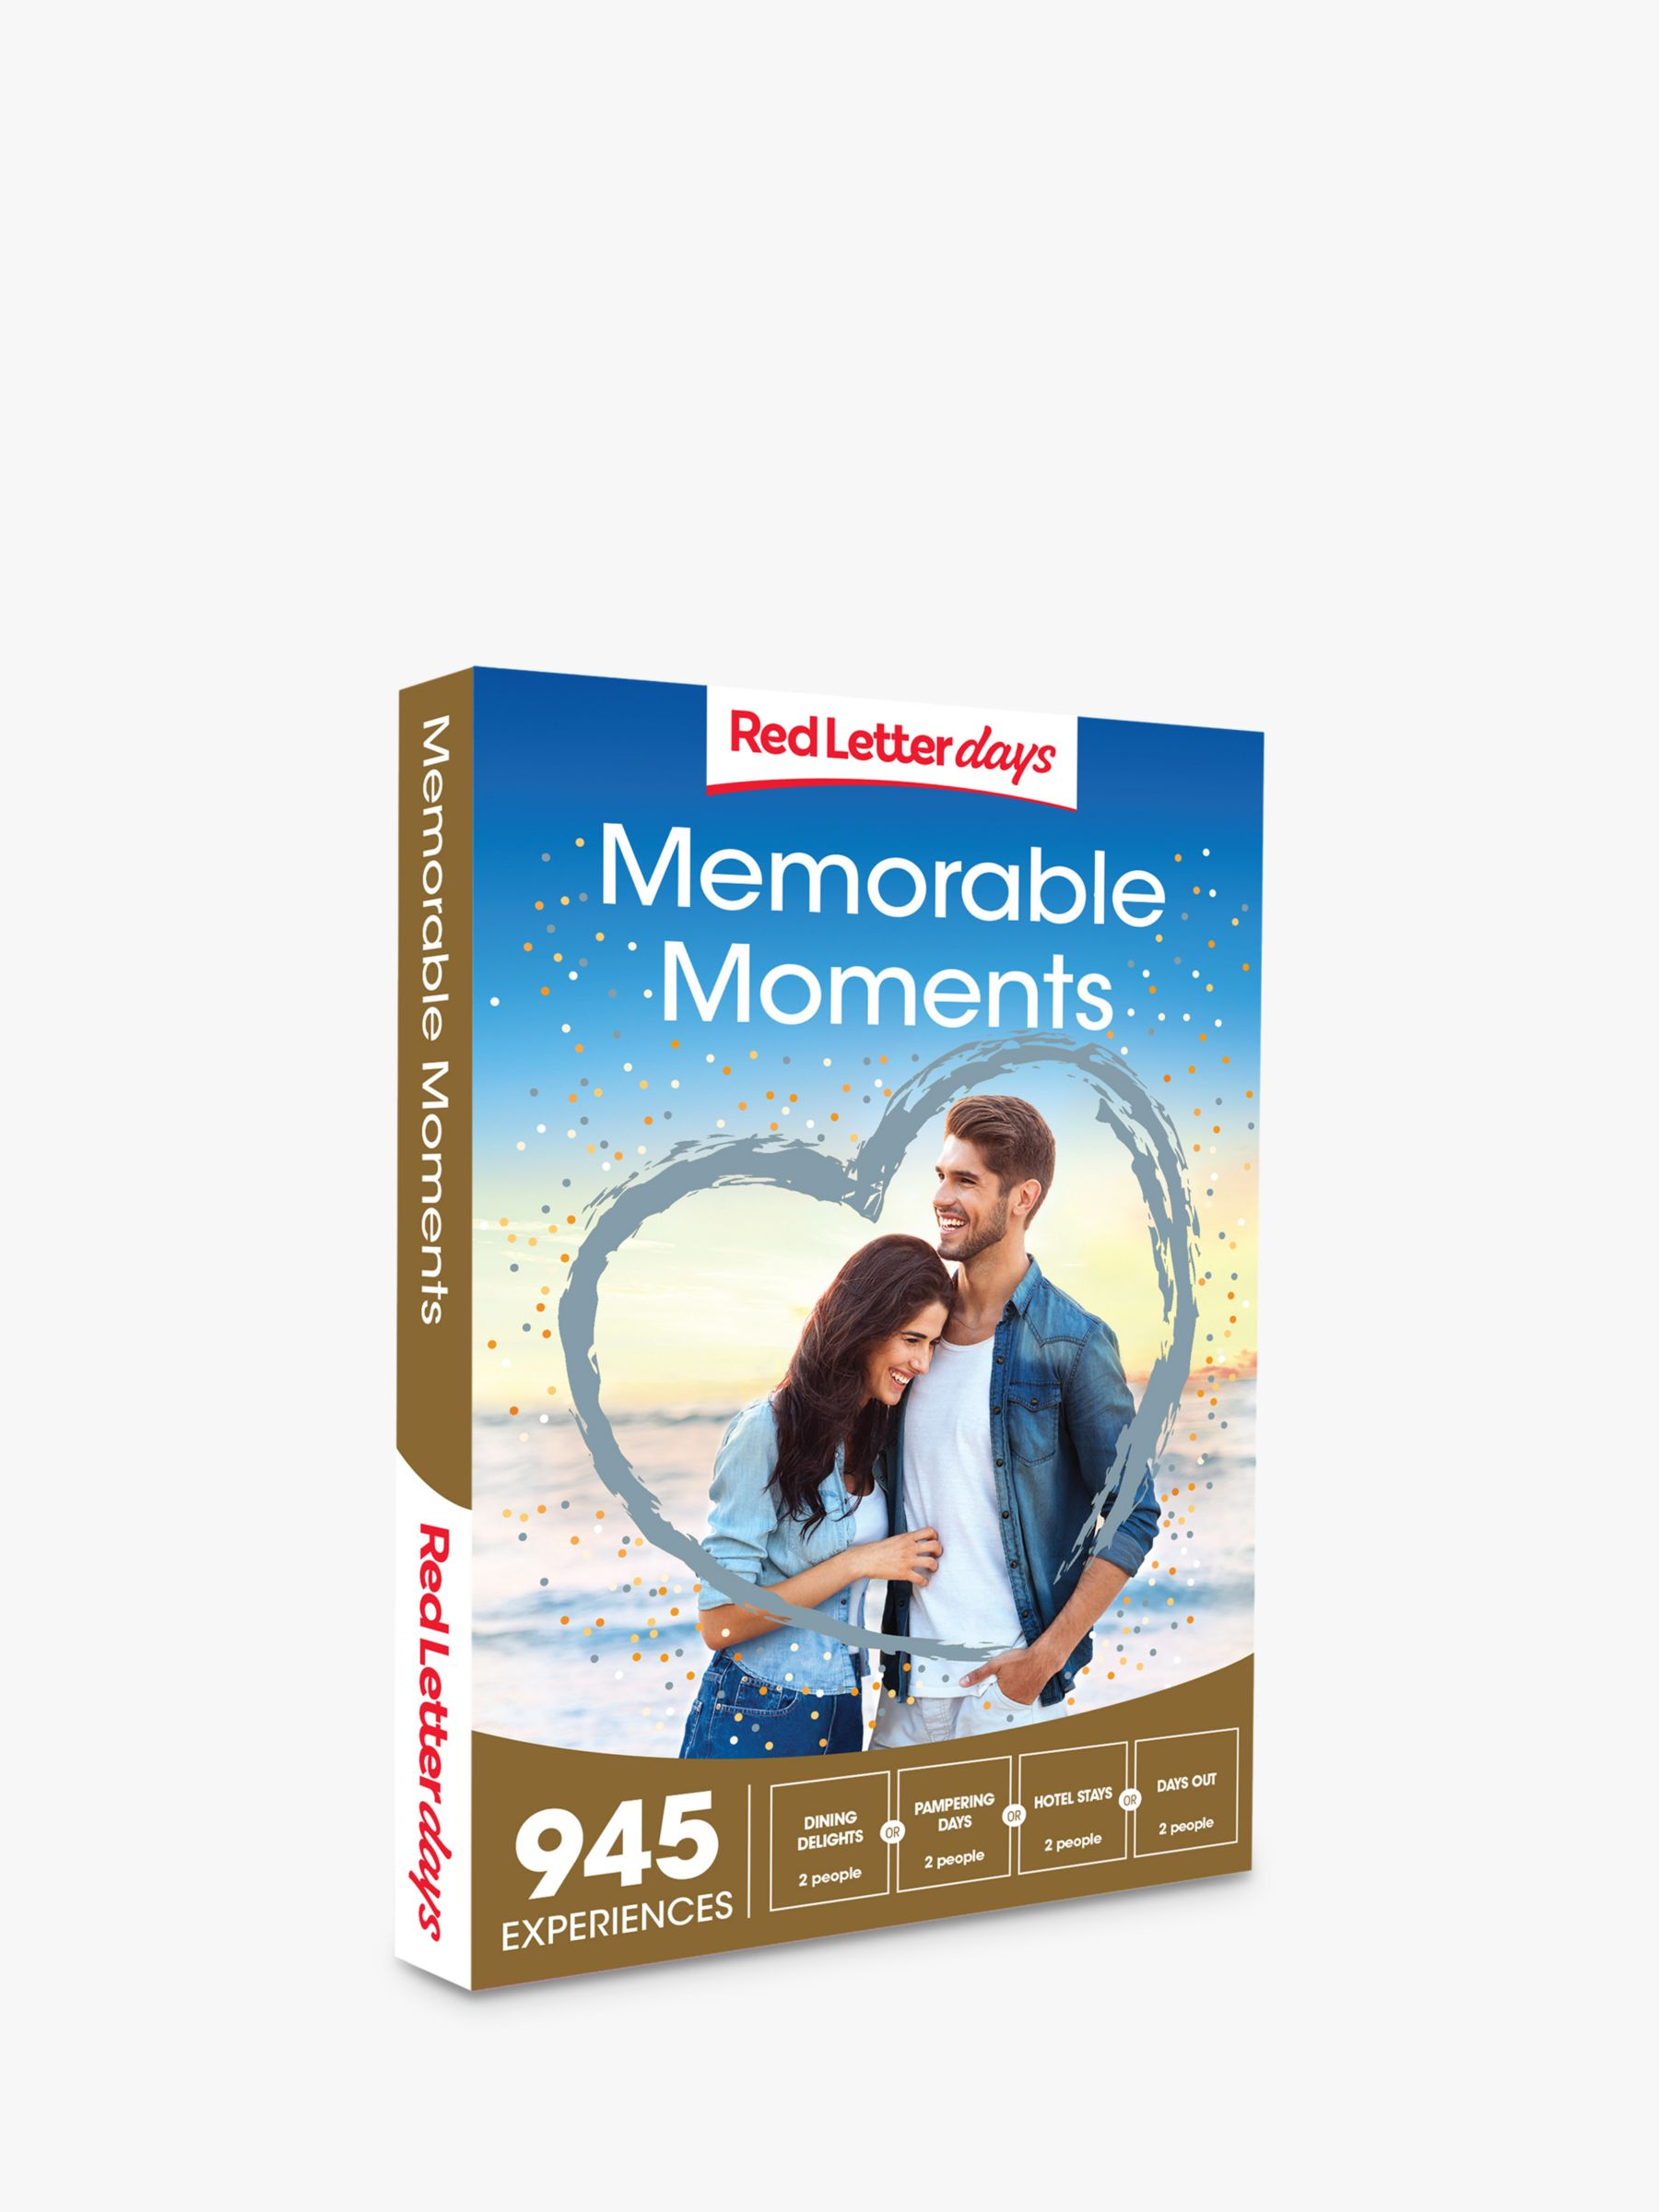 Red Letter Days Red Letter Days Memorable Moments Gift Experience